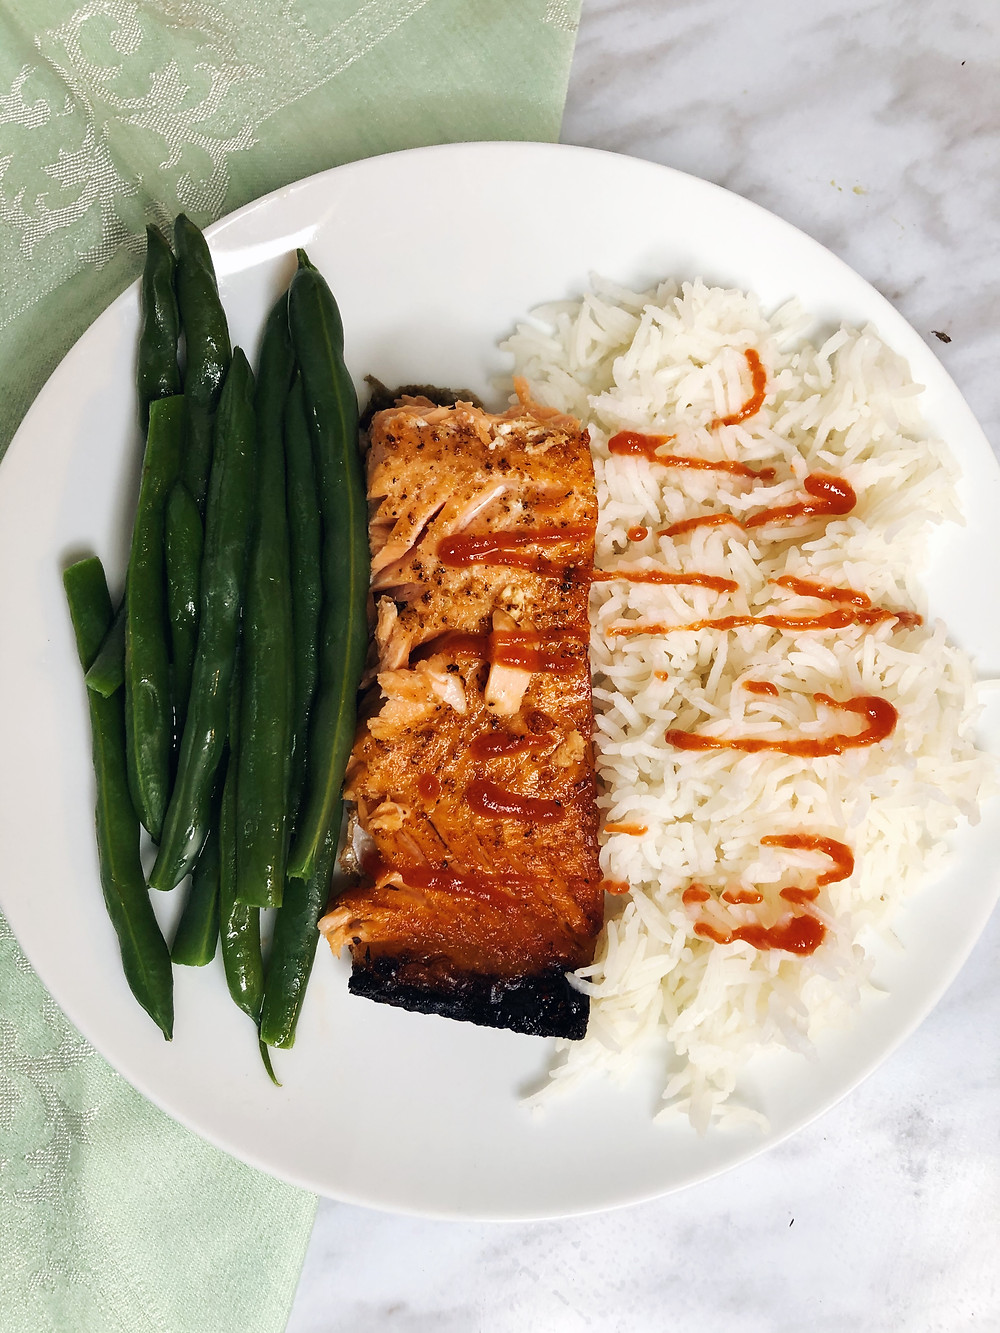 Salmon, green beans and rice with sriracha. The salmon contains a good amount of omega 3s